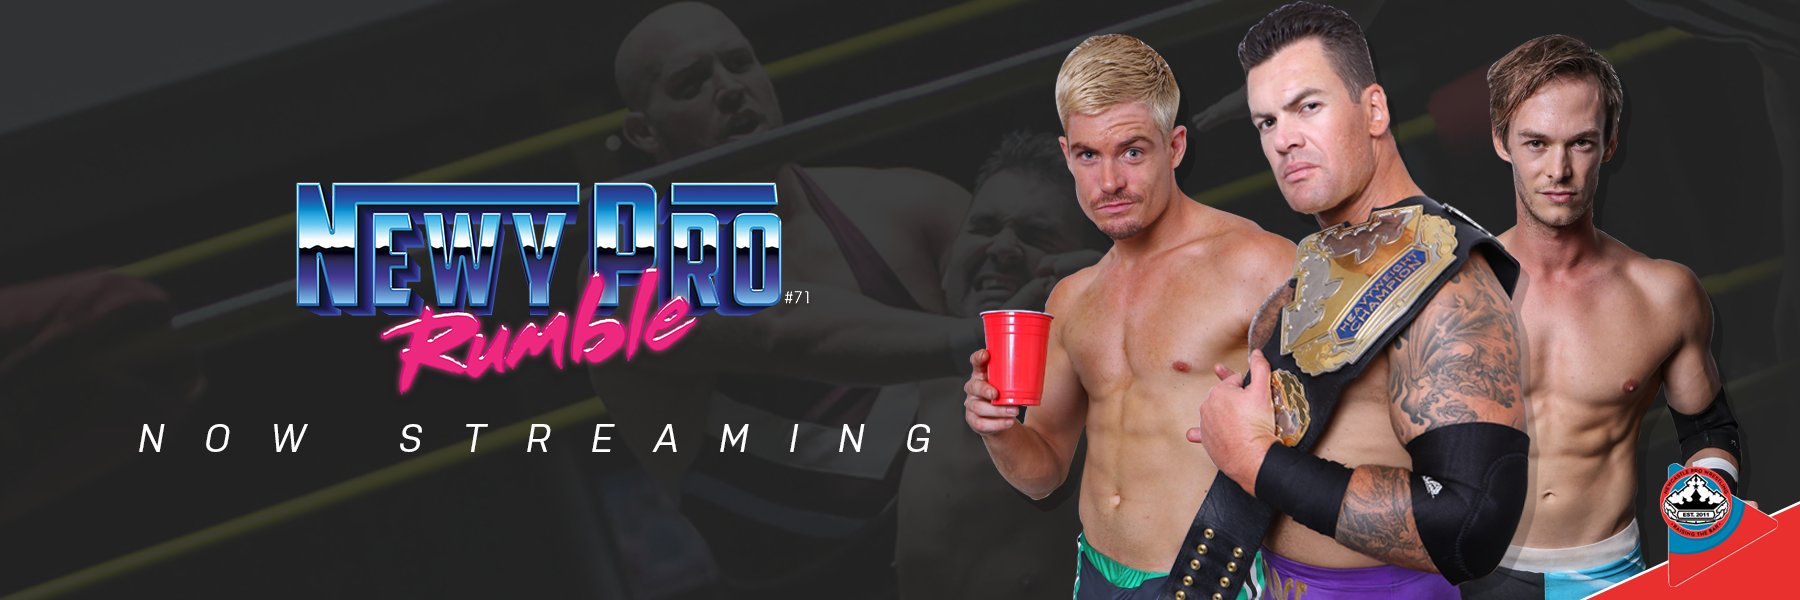 #NEWYPRO RUMBLE 2018 - NOW STREAMING